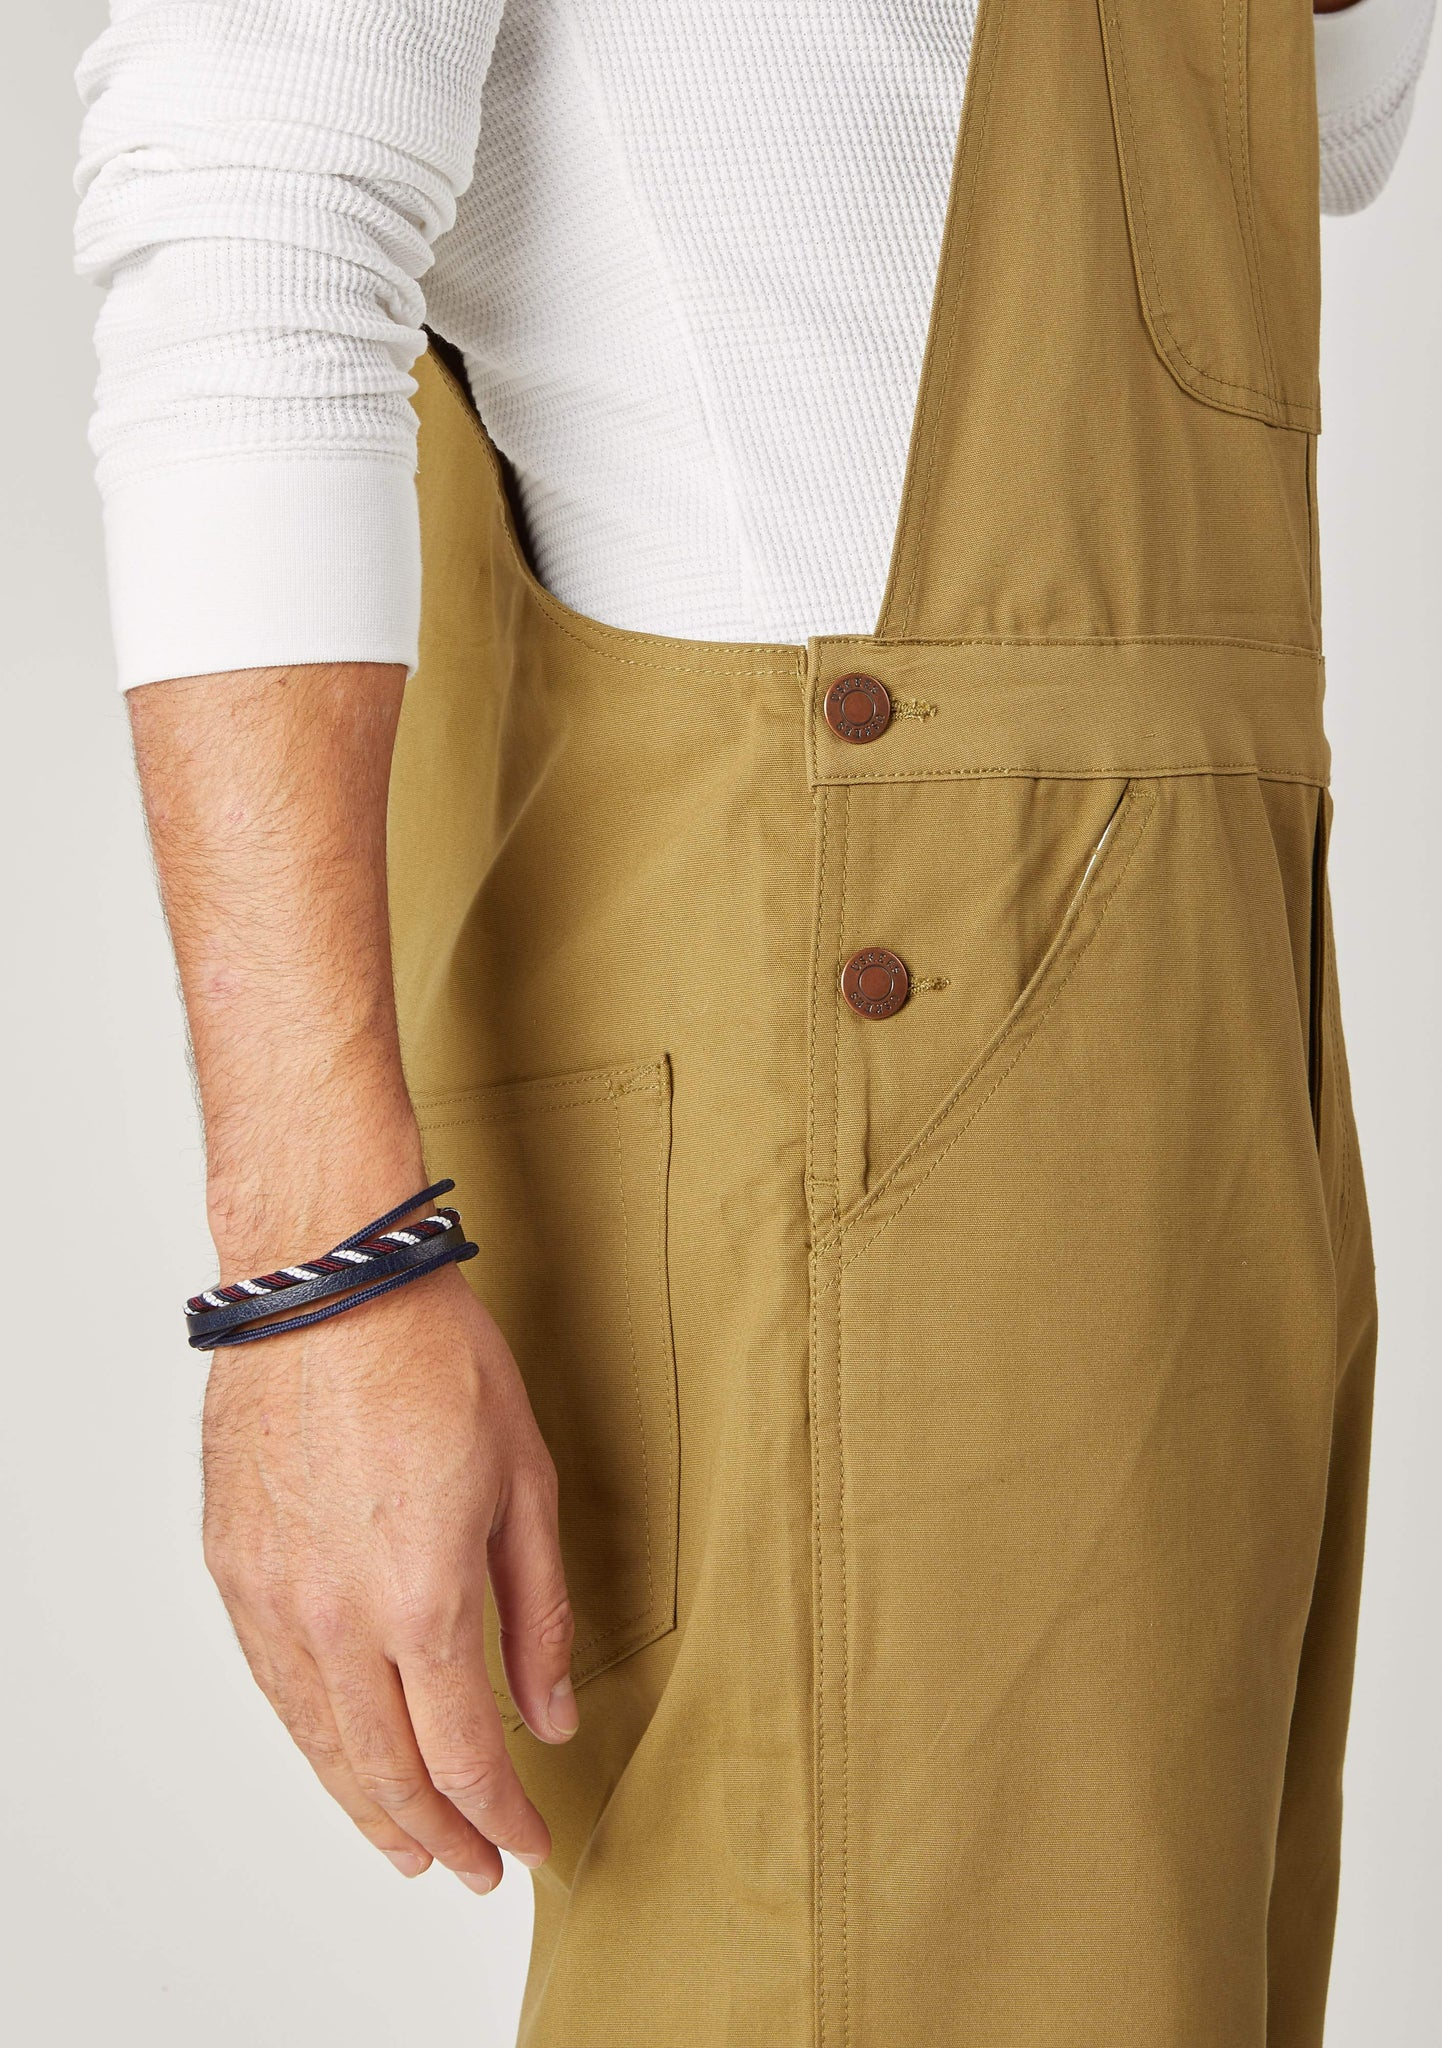 Close-up of side button fastening and denim detailing from 'Christopher' brand dungaree shorts from Dungarees Online.